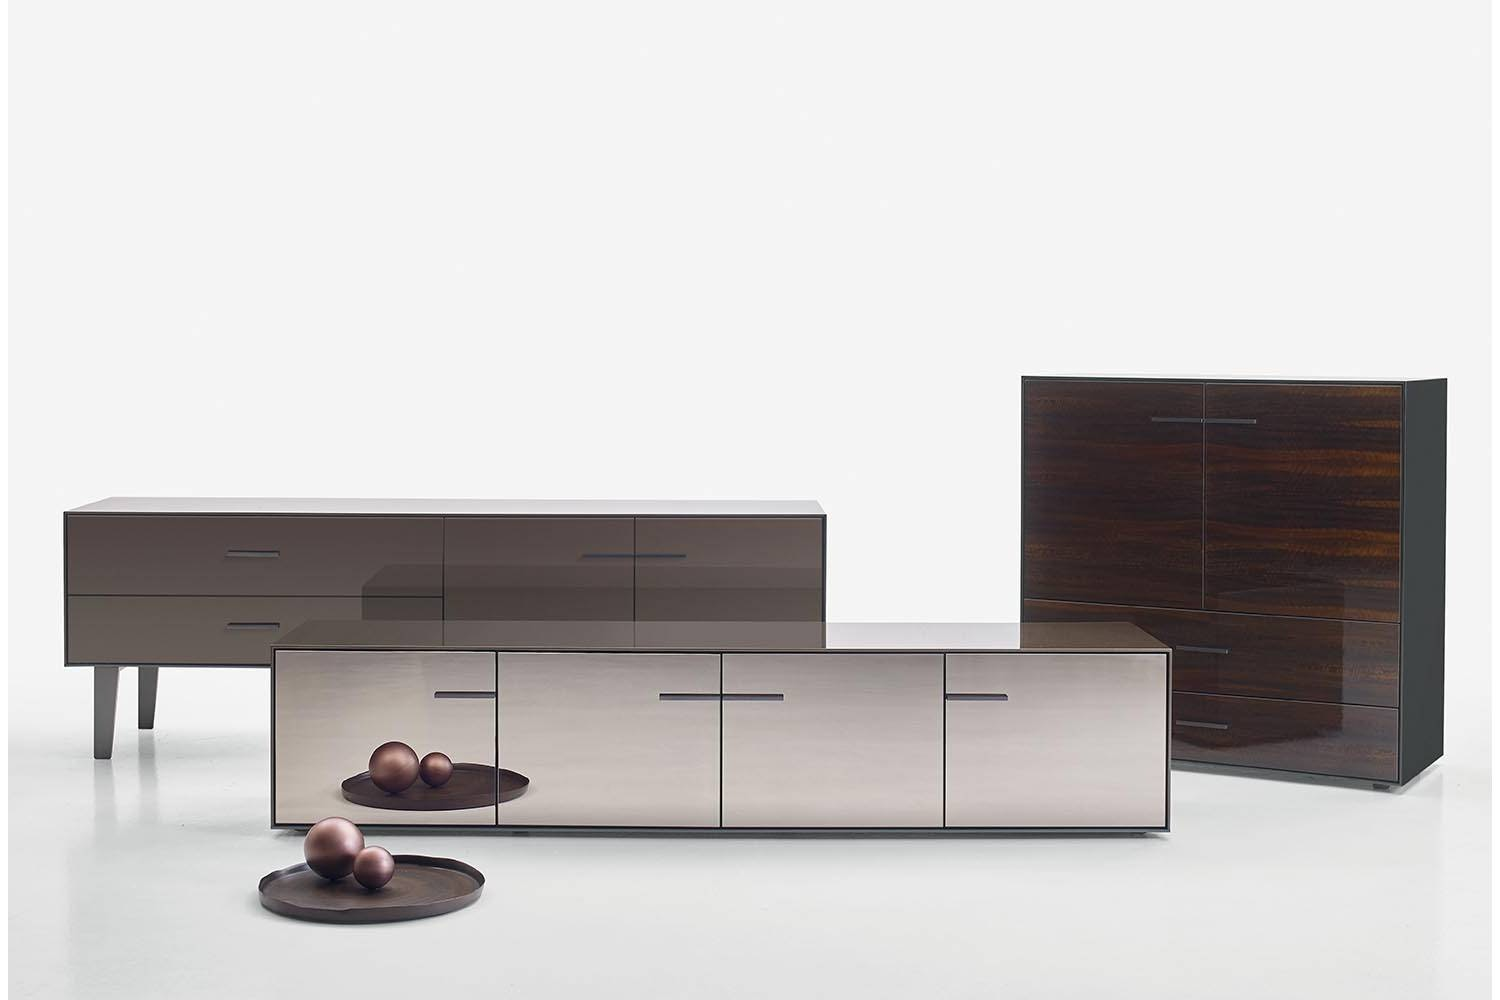 Eucalipto Storage Unit by Antonio Citterio for B&B Italia